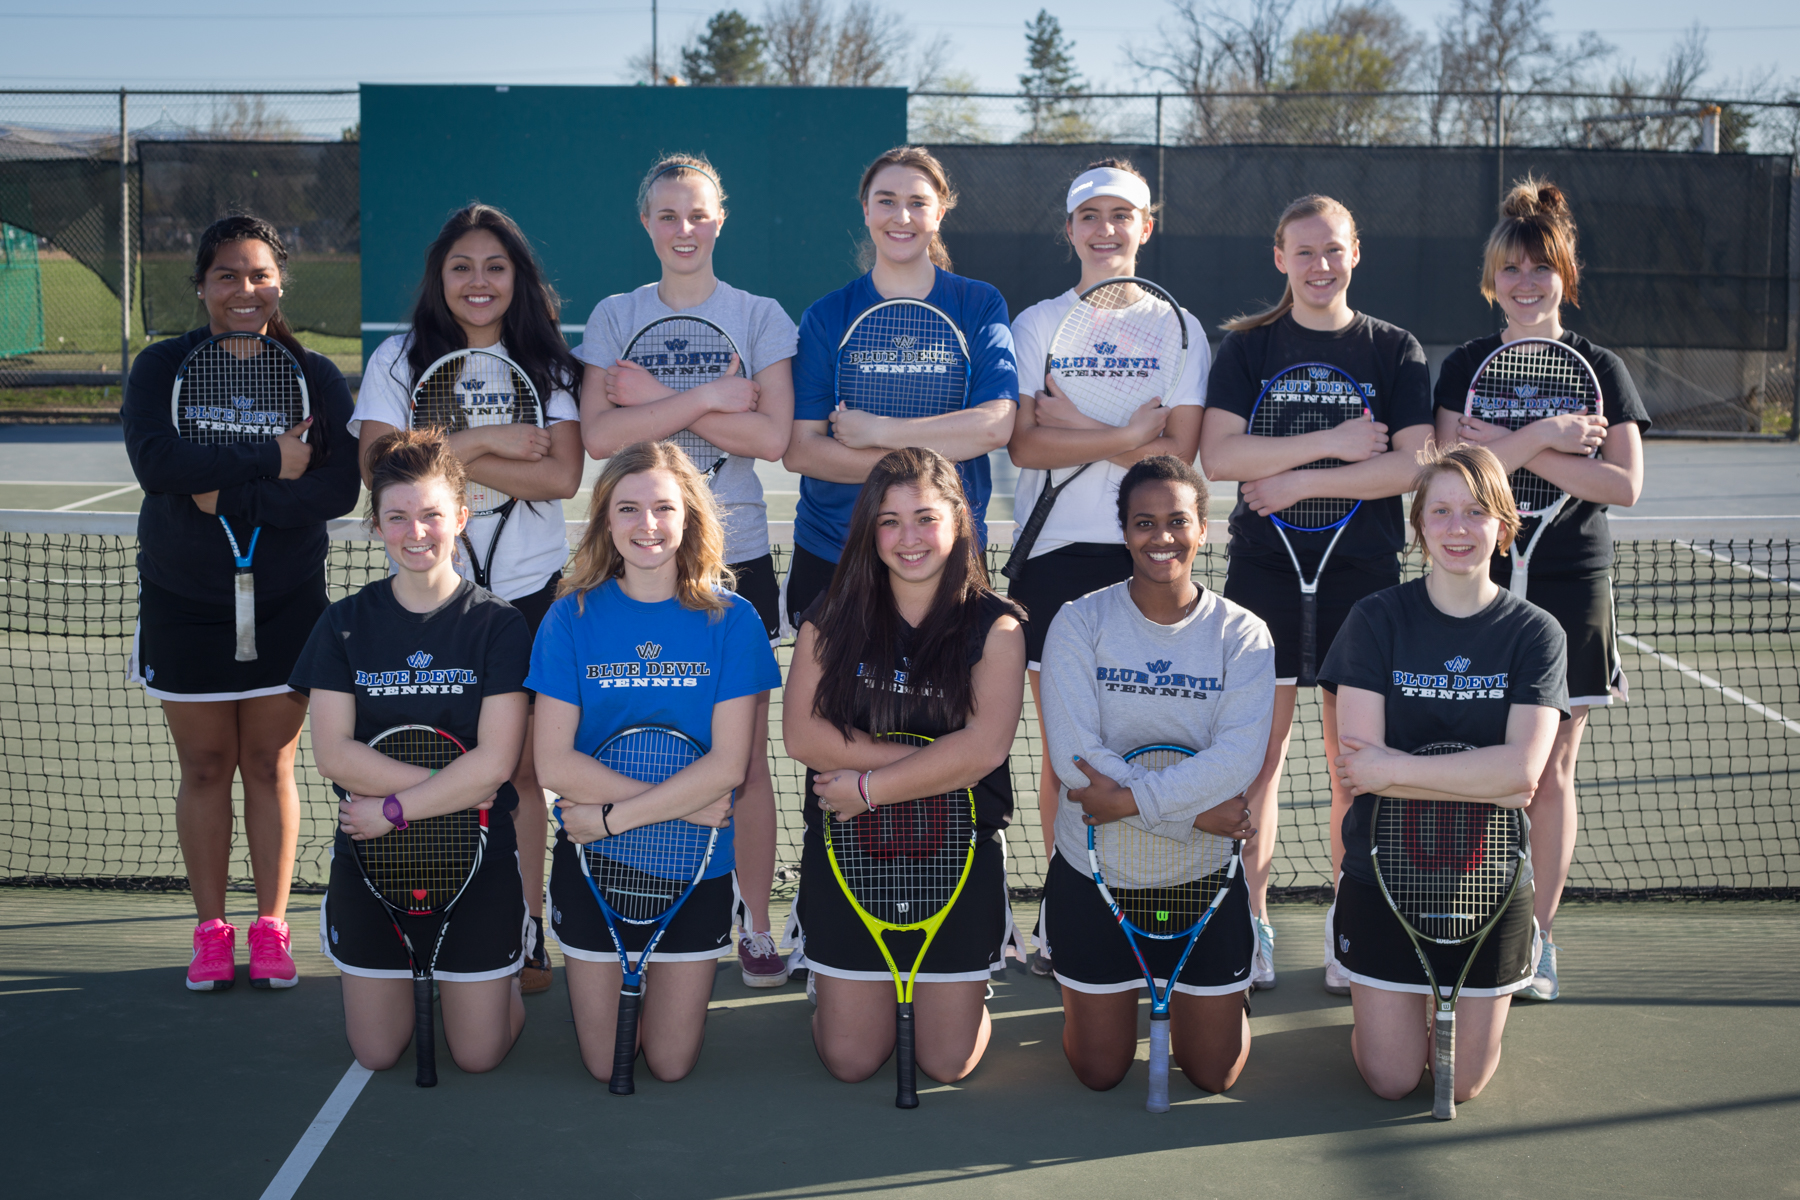 images/athletics/Tennis/2015-_Girls_Tennis-_Varsity.jpg